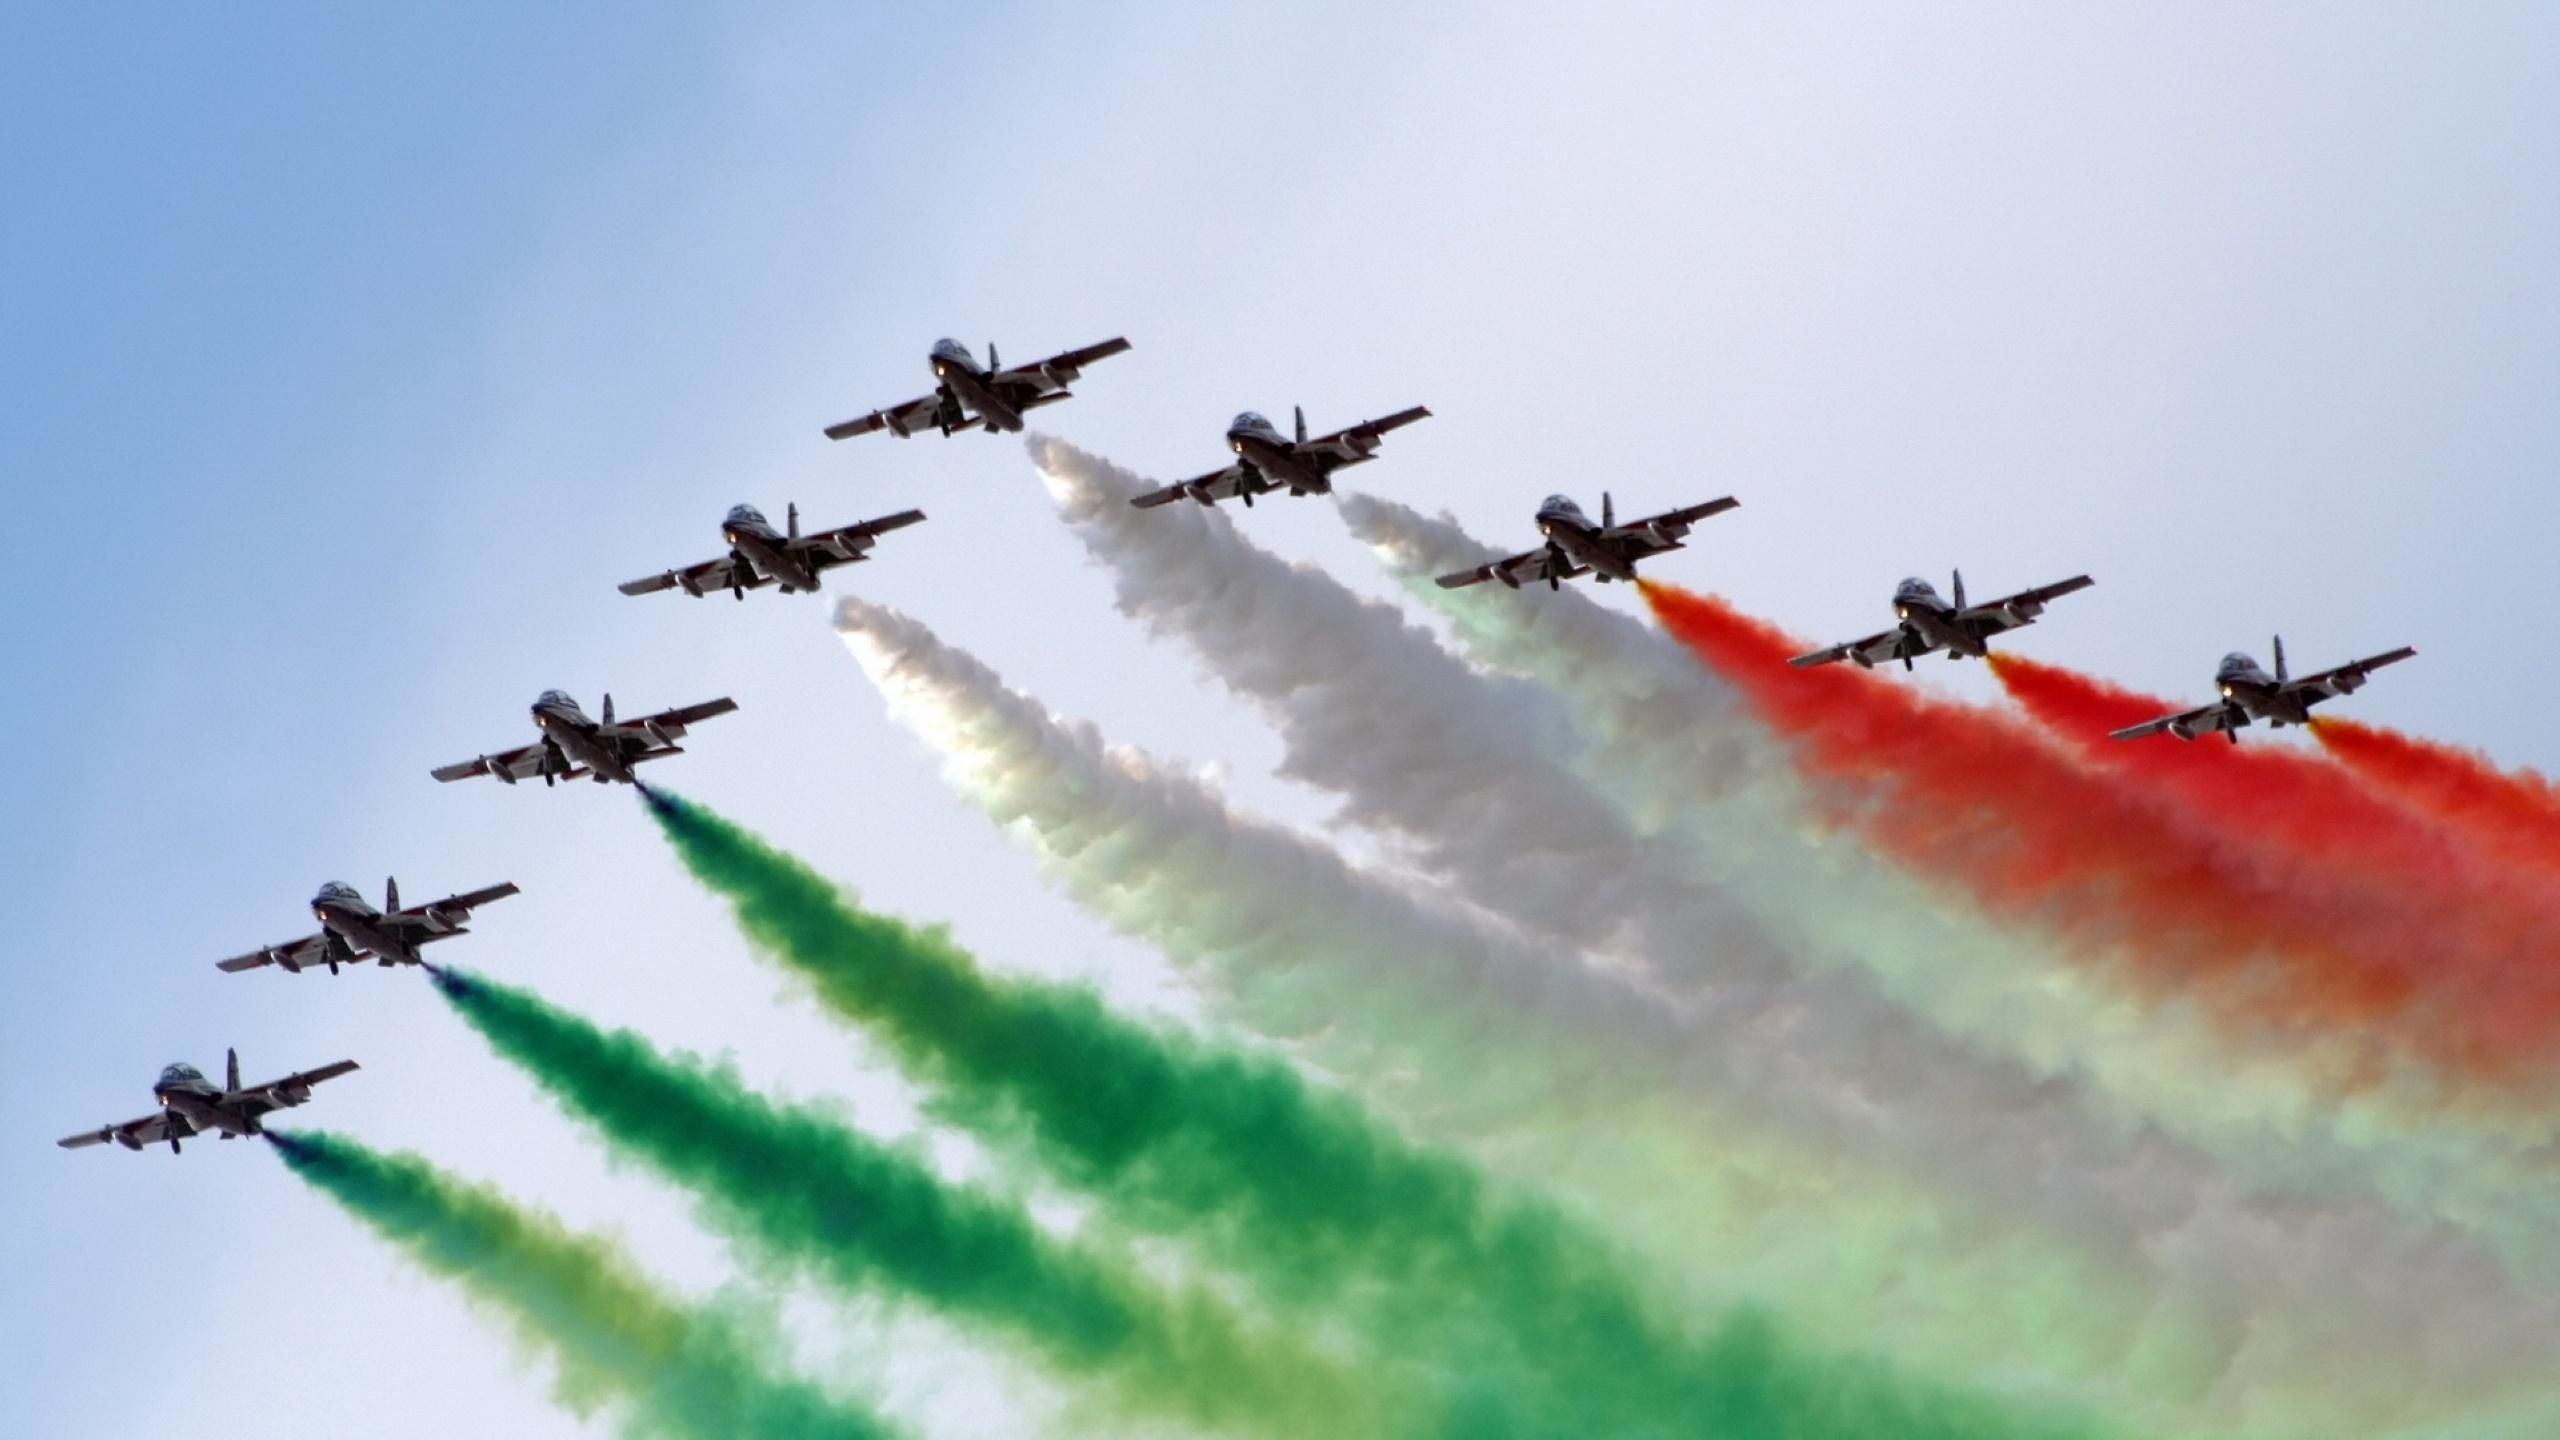 2560x1440 Indian Army Hd Wallpaper Hd Desktop Uhd 4k Mobile Tablet Indian Independence Day Independence Day Wallpaper Independence Day Images